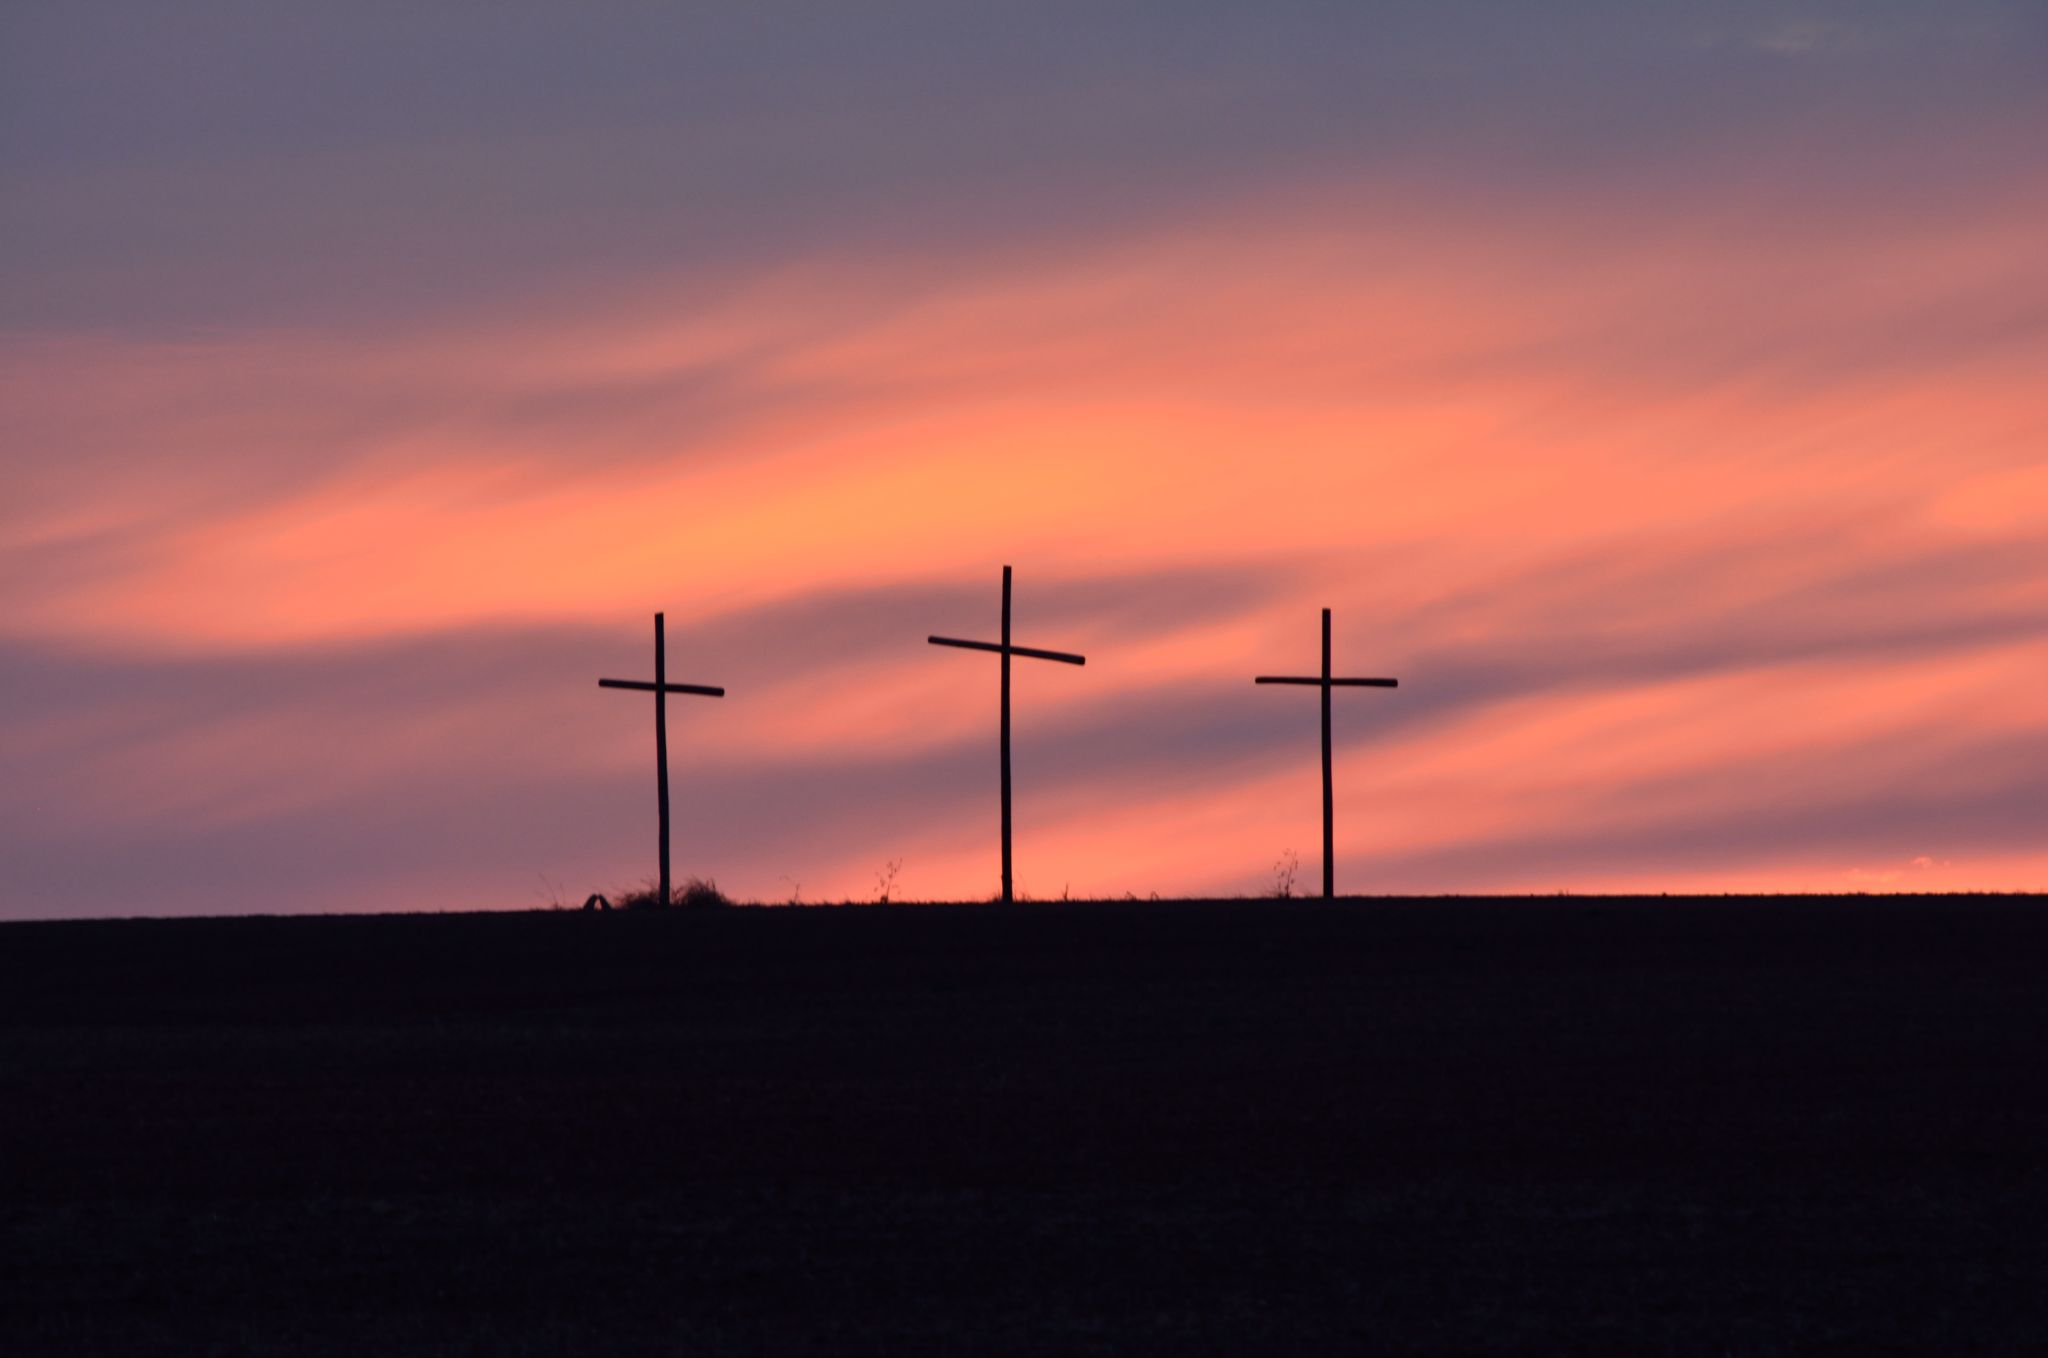 The Old Rugged Cross by lne.kirkes